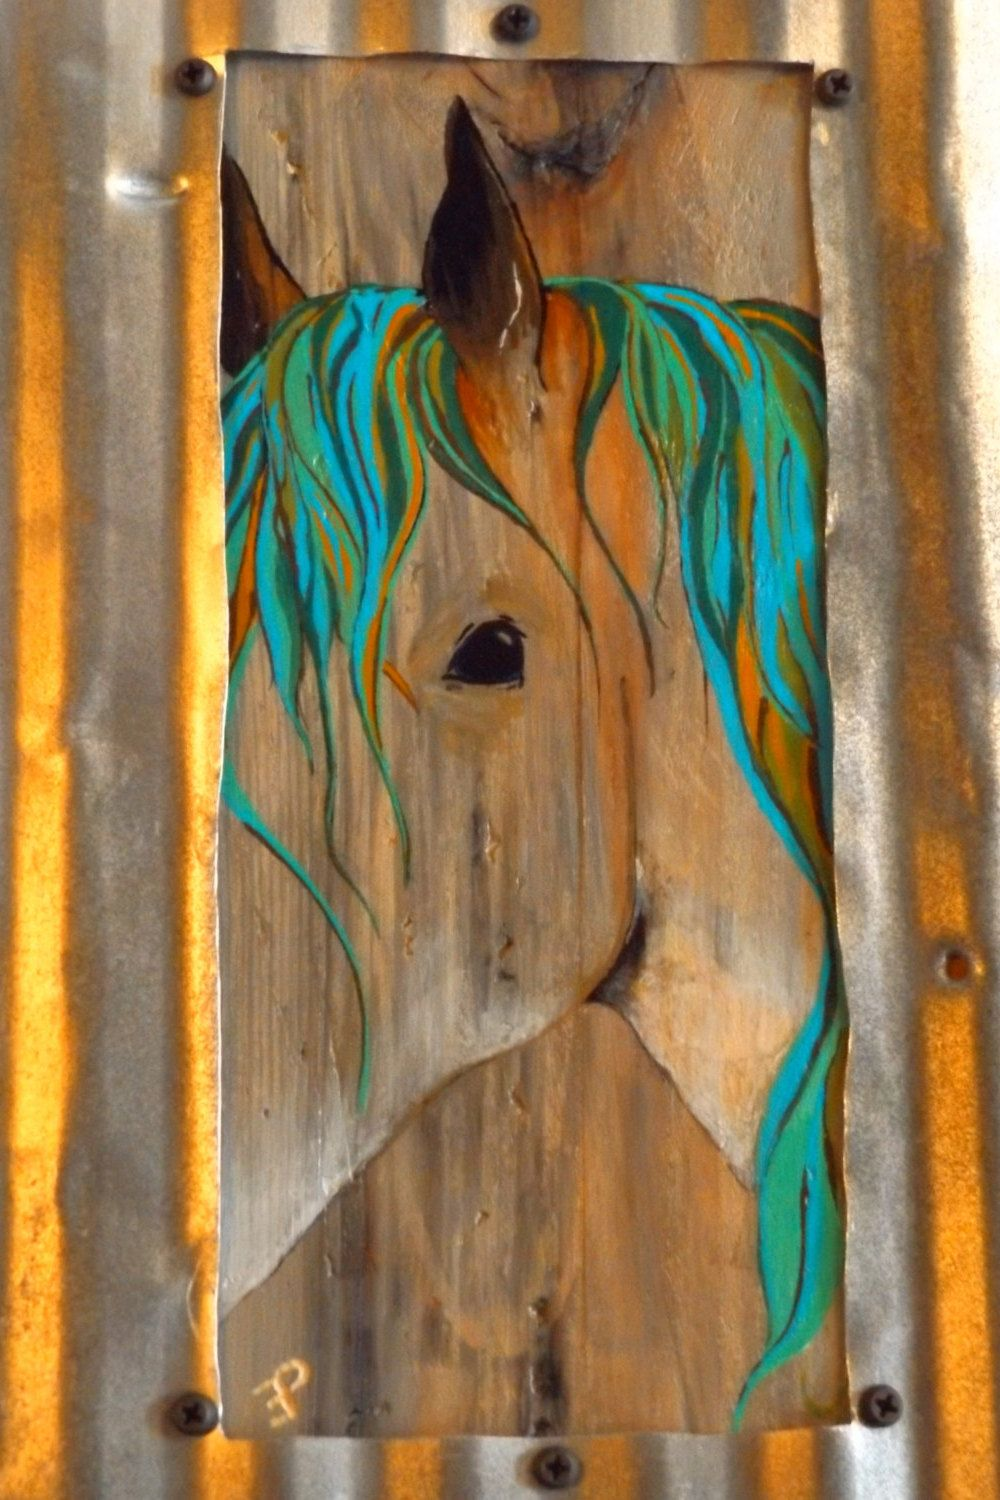 The Forest Original Hand Painted Horse On Reclaimed Wood Framed With Tin Abstract Rustic Art Wall Decor By Itsallcountry